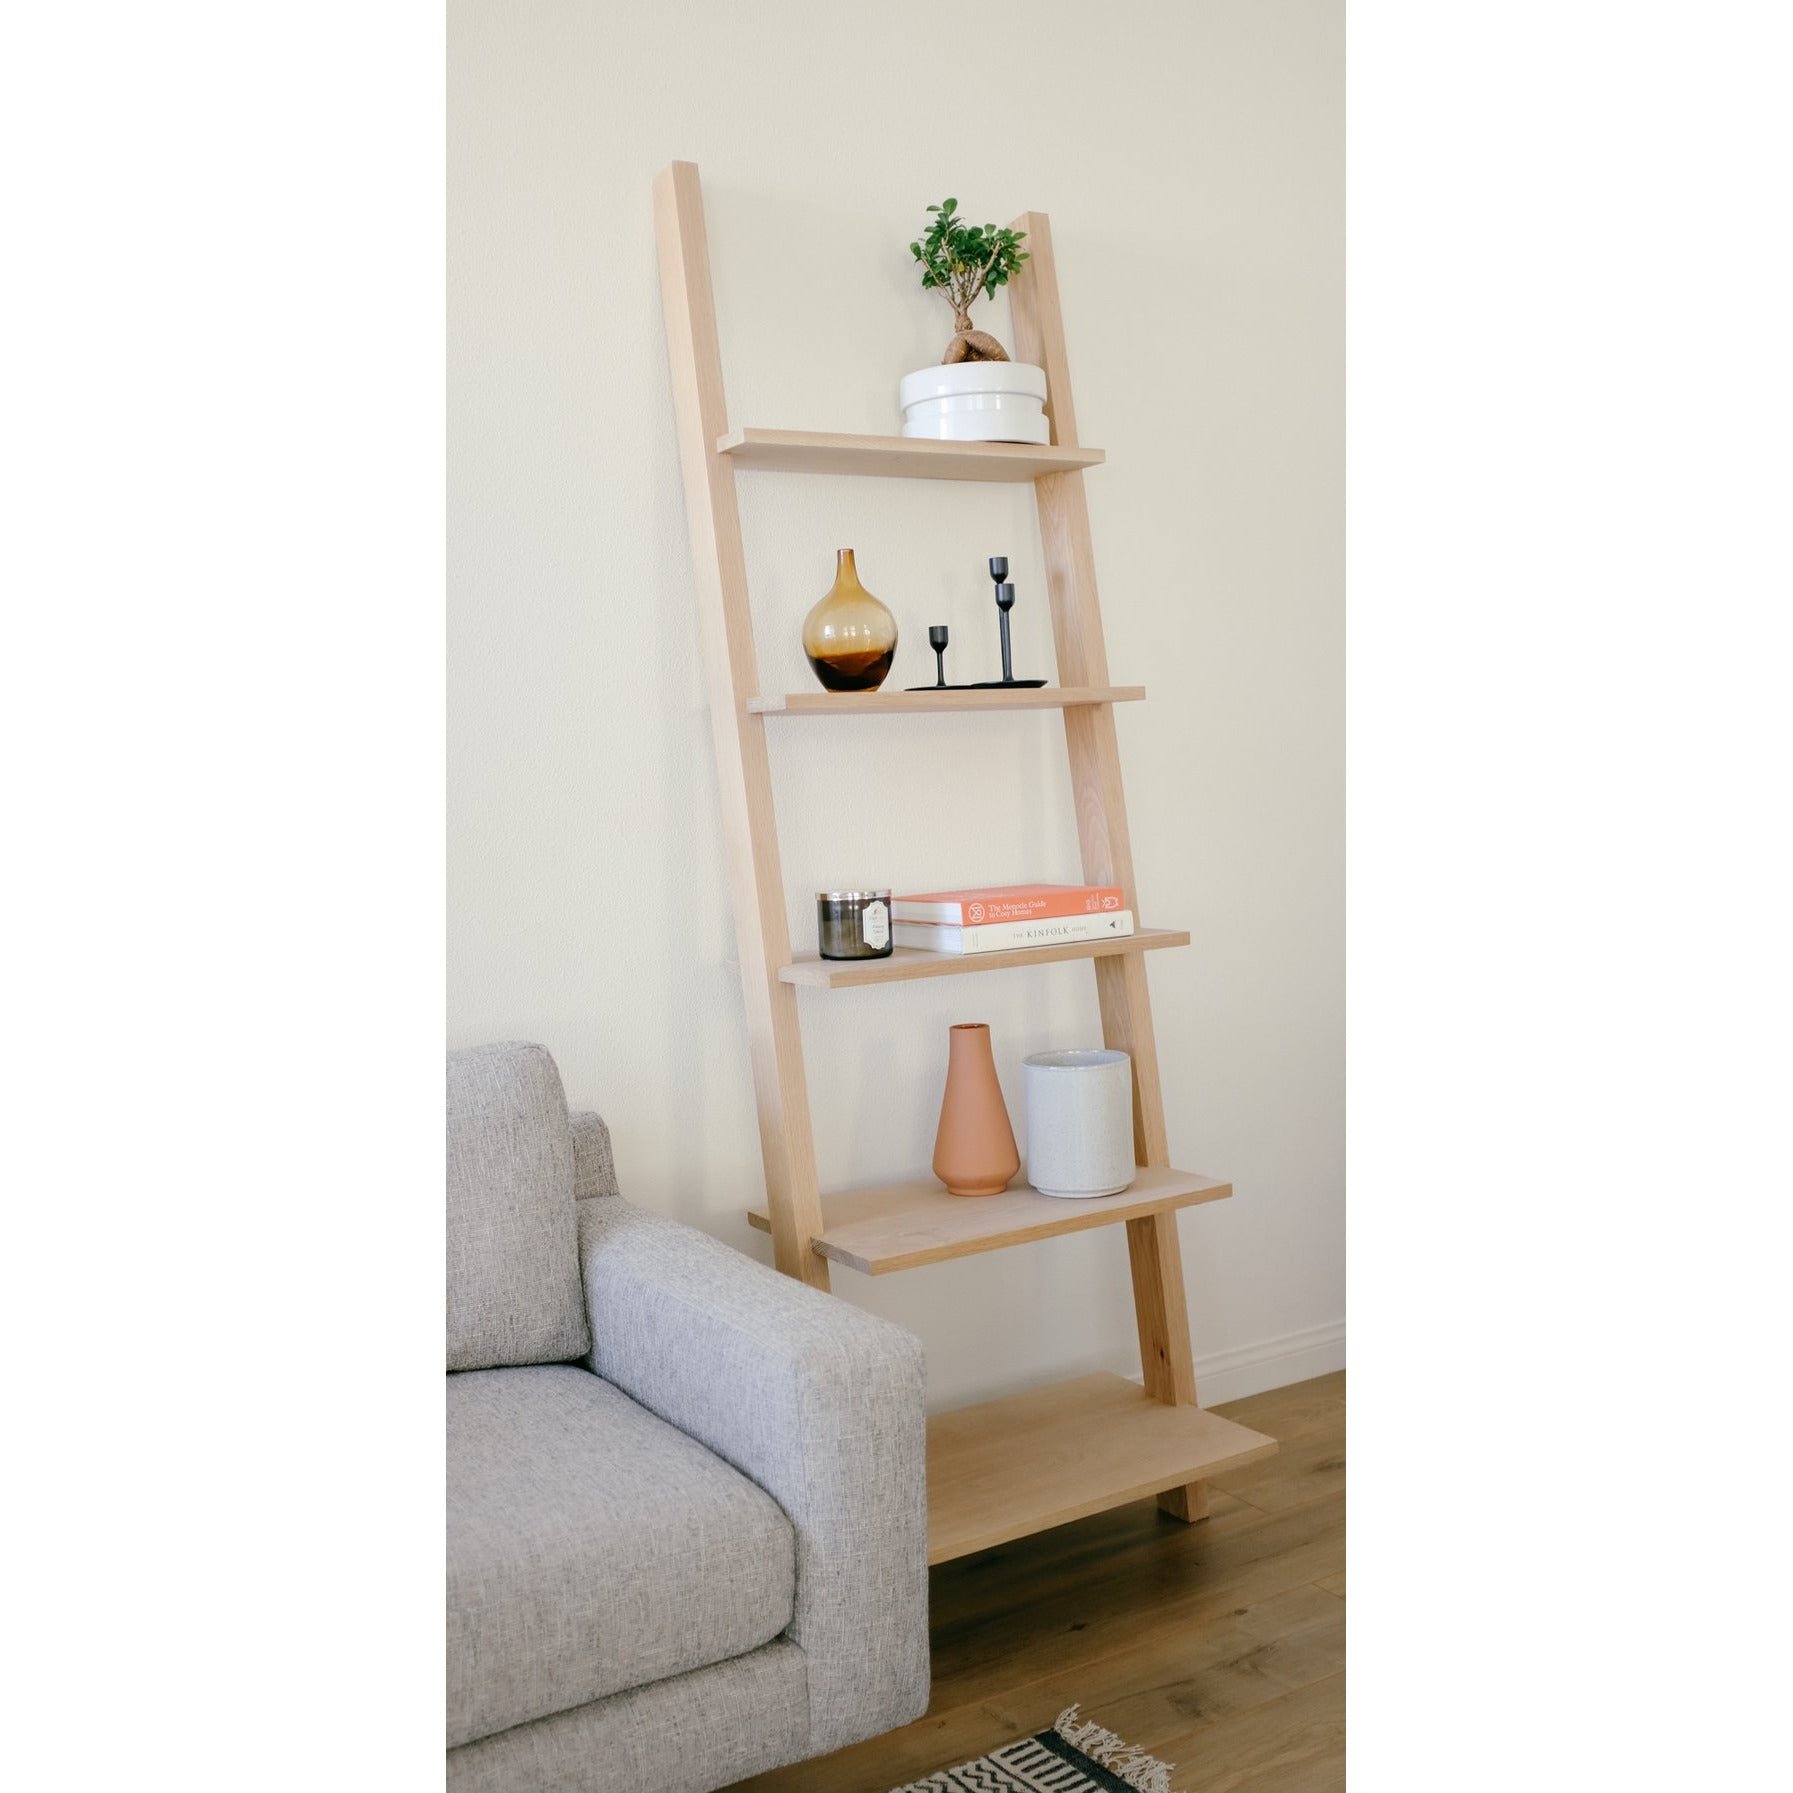 Two Walnut Ladder Shelves